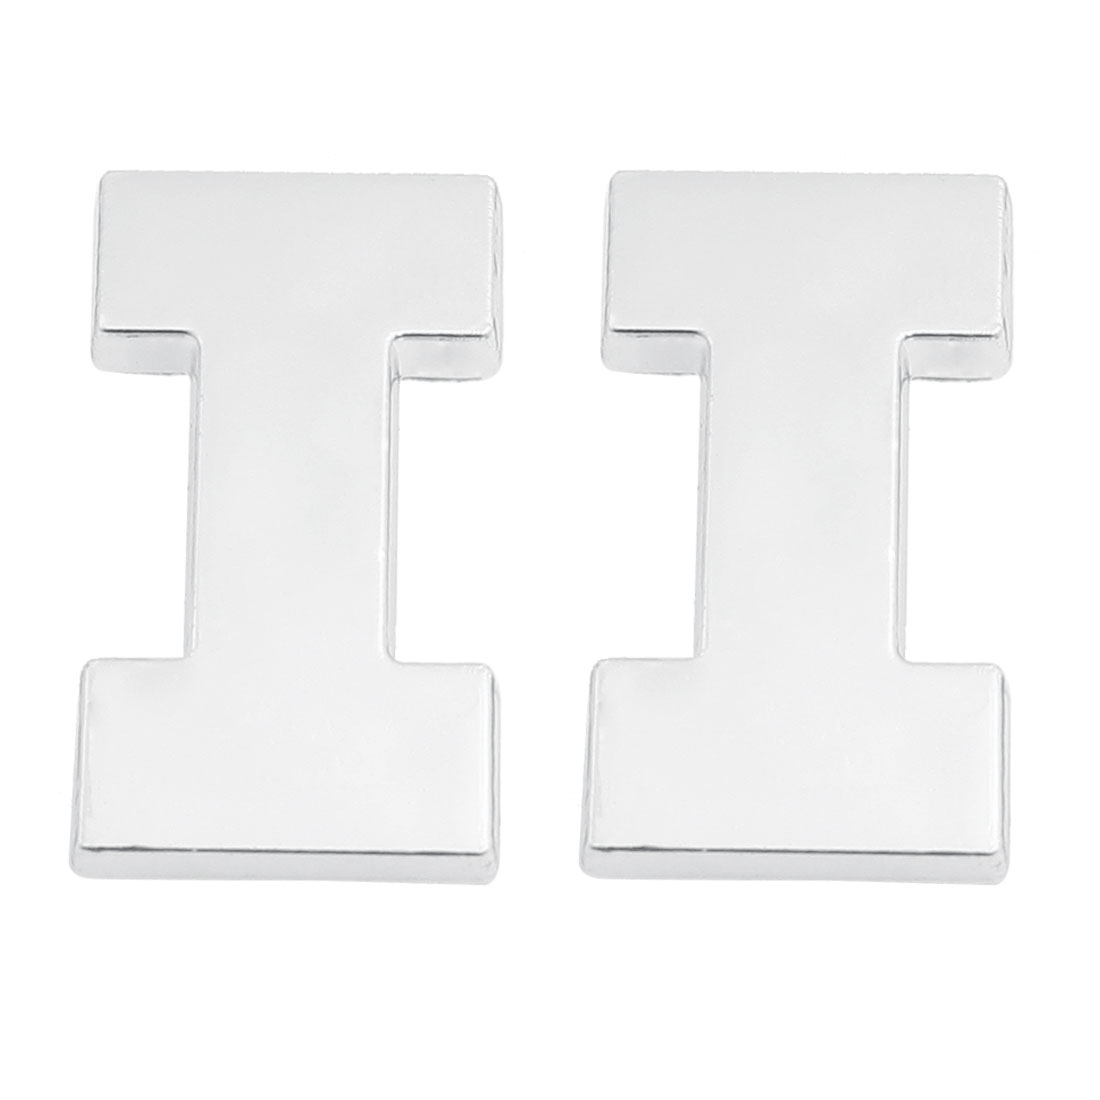 Car Vehicle Hood Trunk Letter I 3D Emblem Badge Sticker Silver Tone 2 Pcs